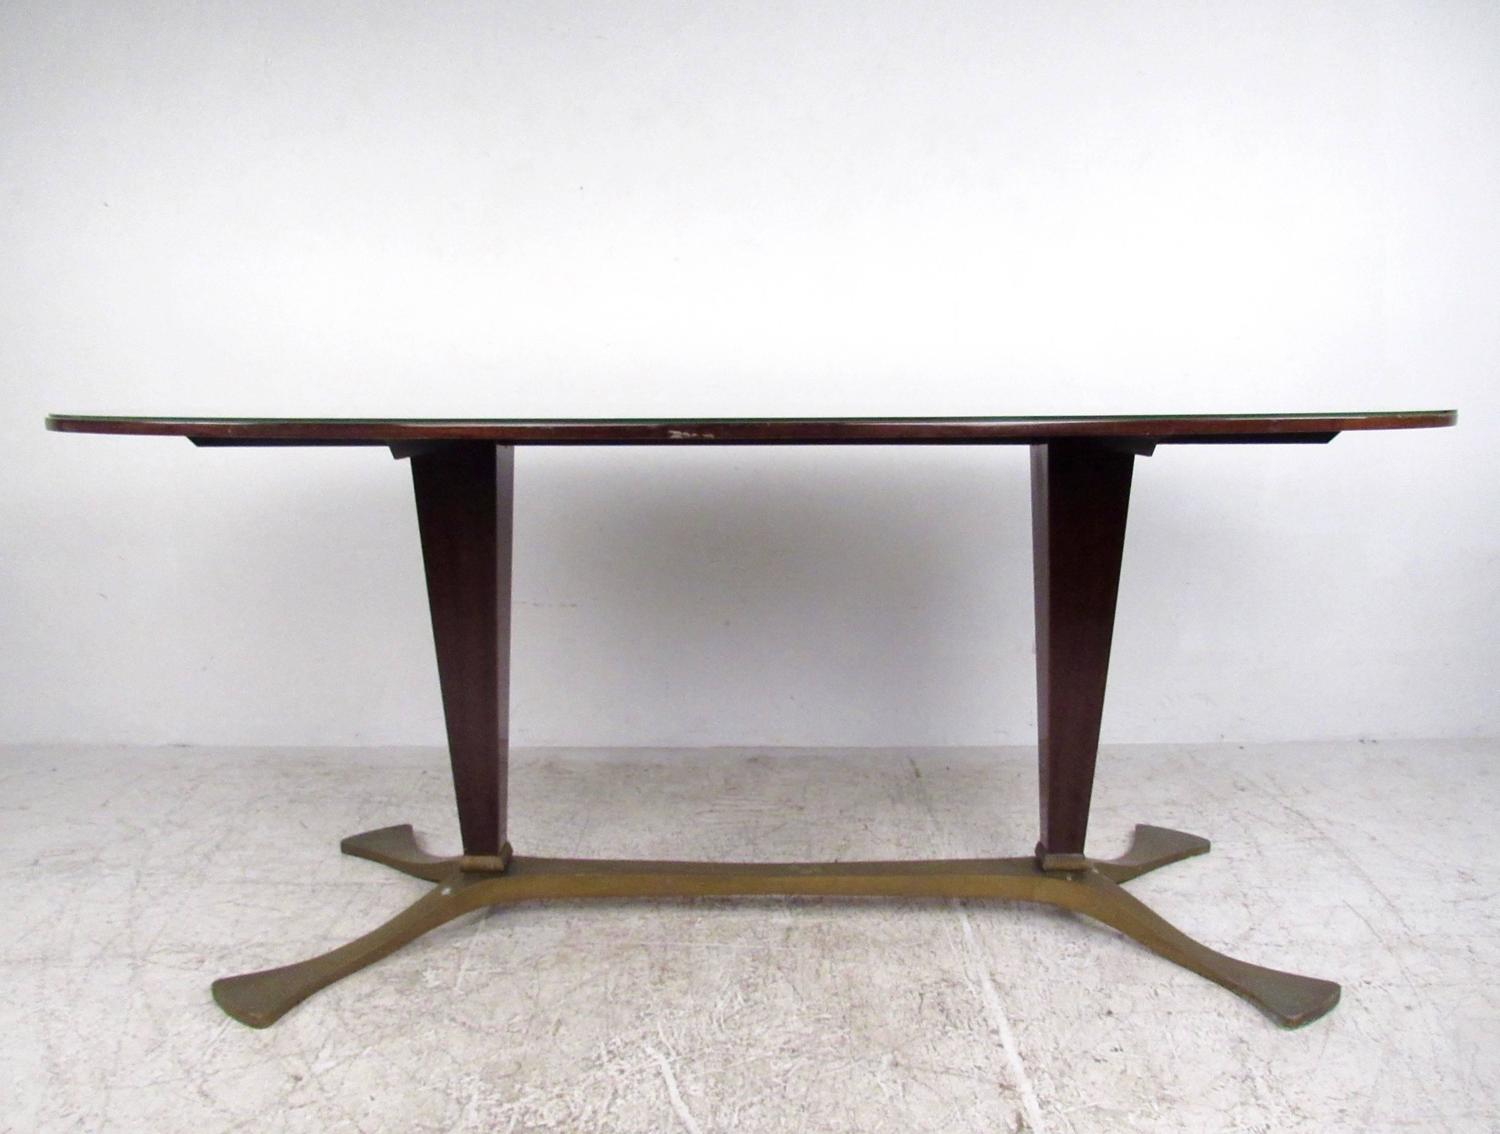 Elegant italian glass top dining table 1950s for sale at for Fancy glass dining table